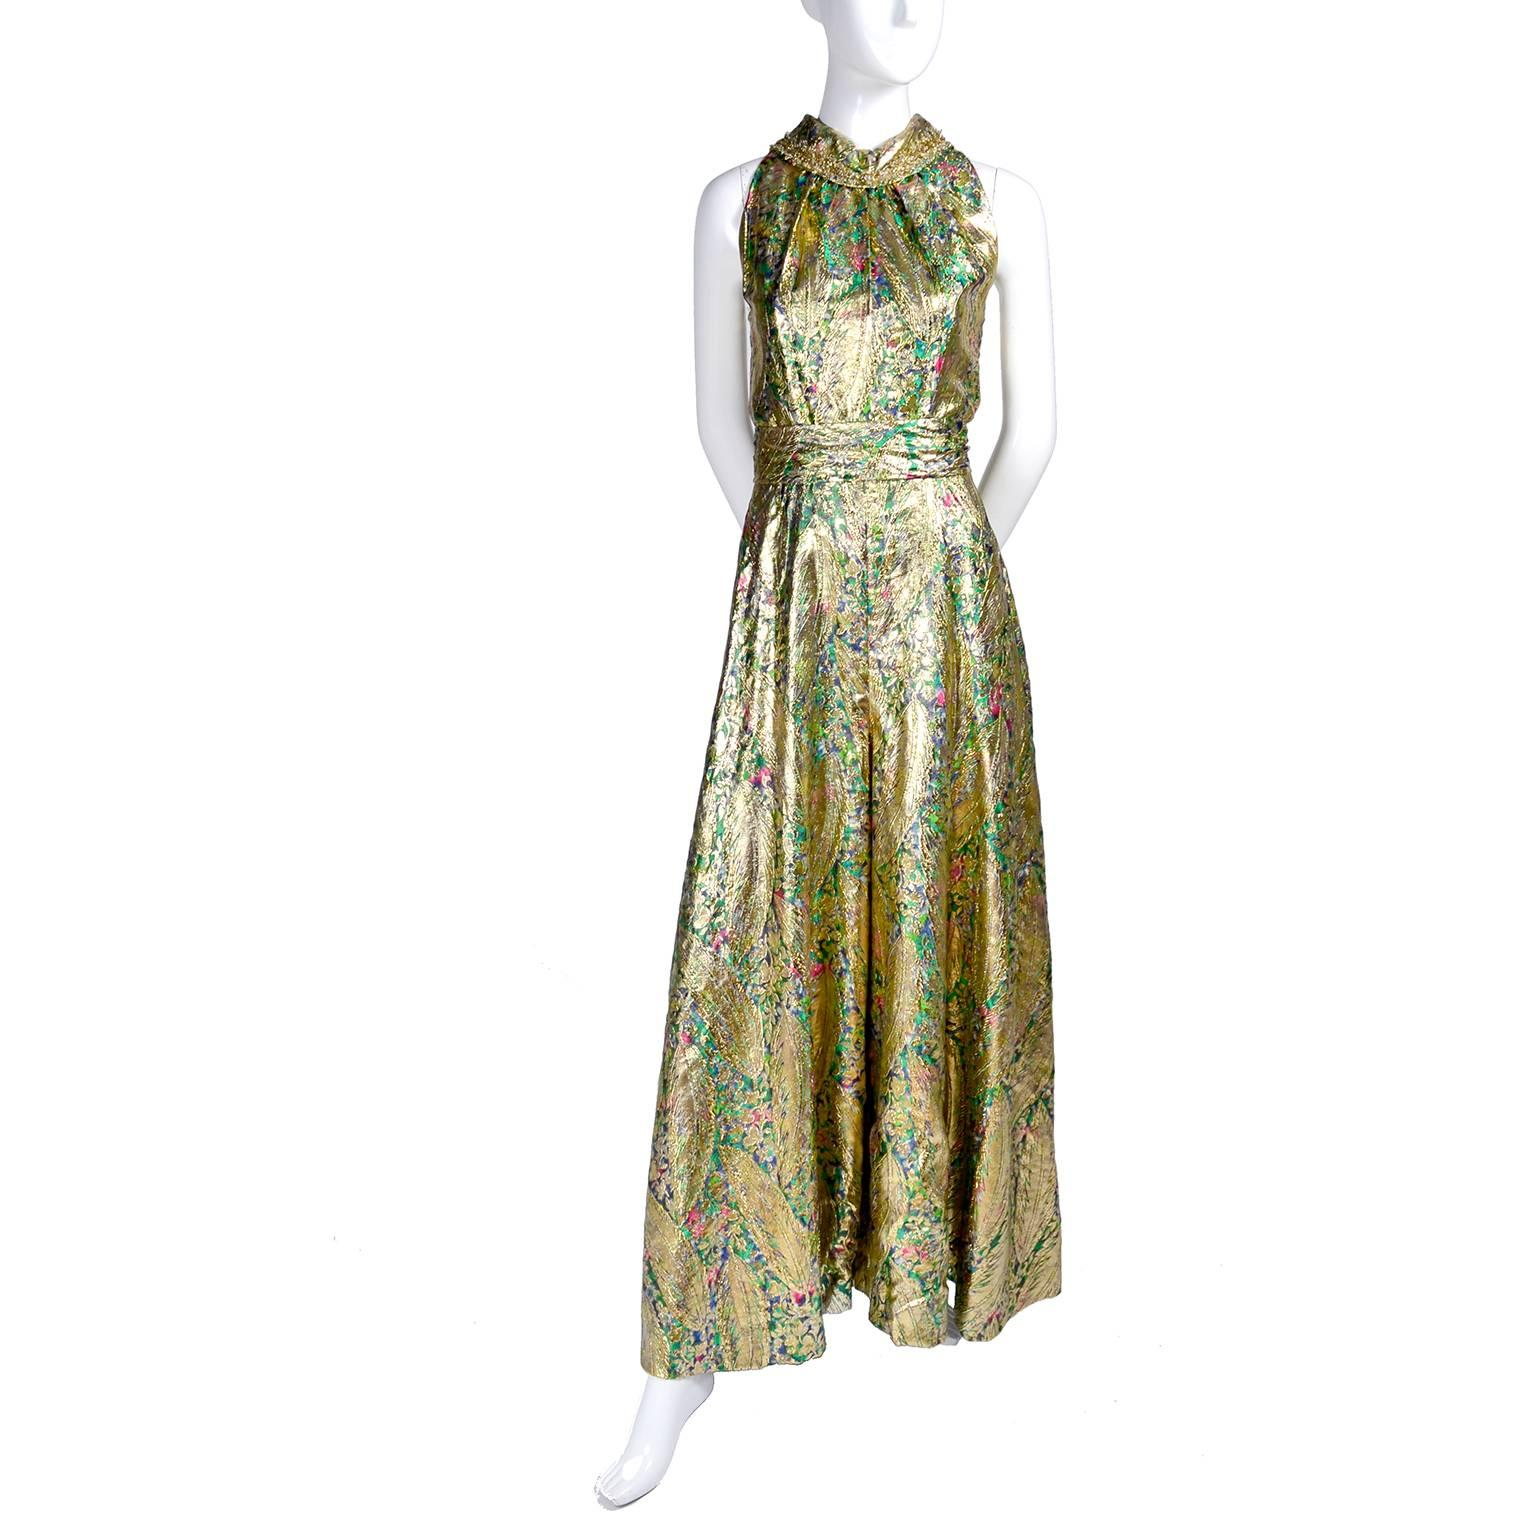 ff2fe30a367 1960s Vintage Gold Lame Wide Leg Jumpsuit Evening Dress Alternative For  Sale at 1stdibs